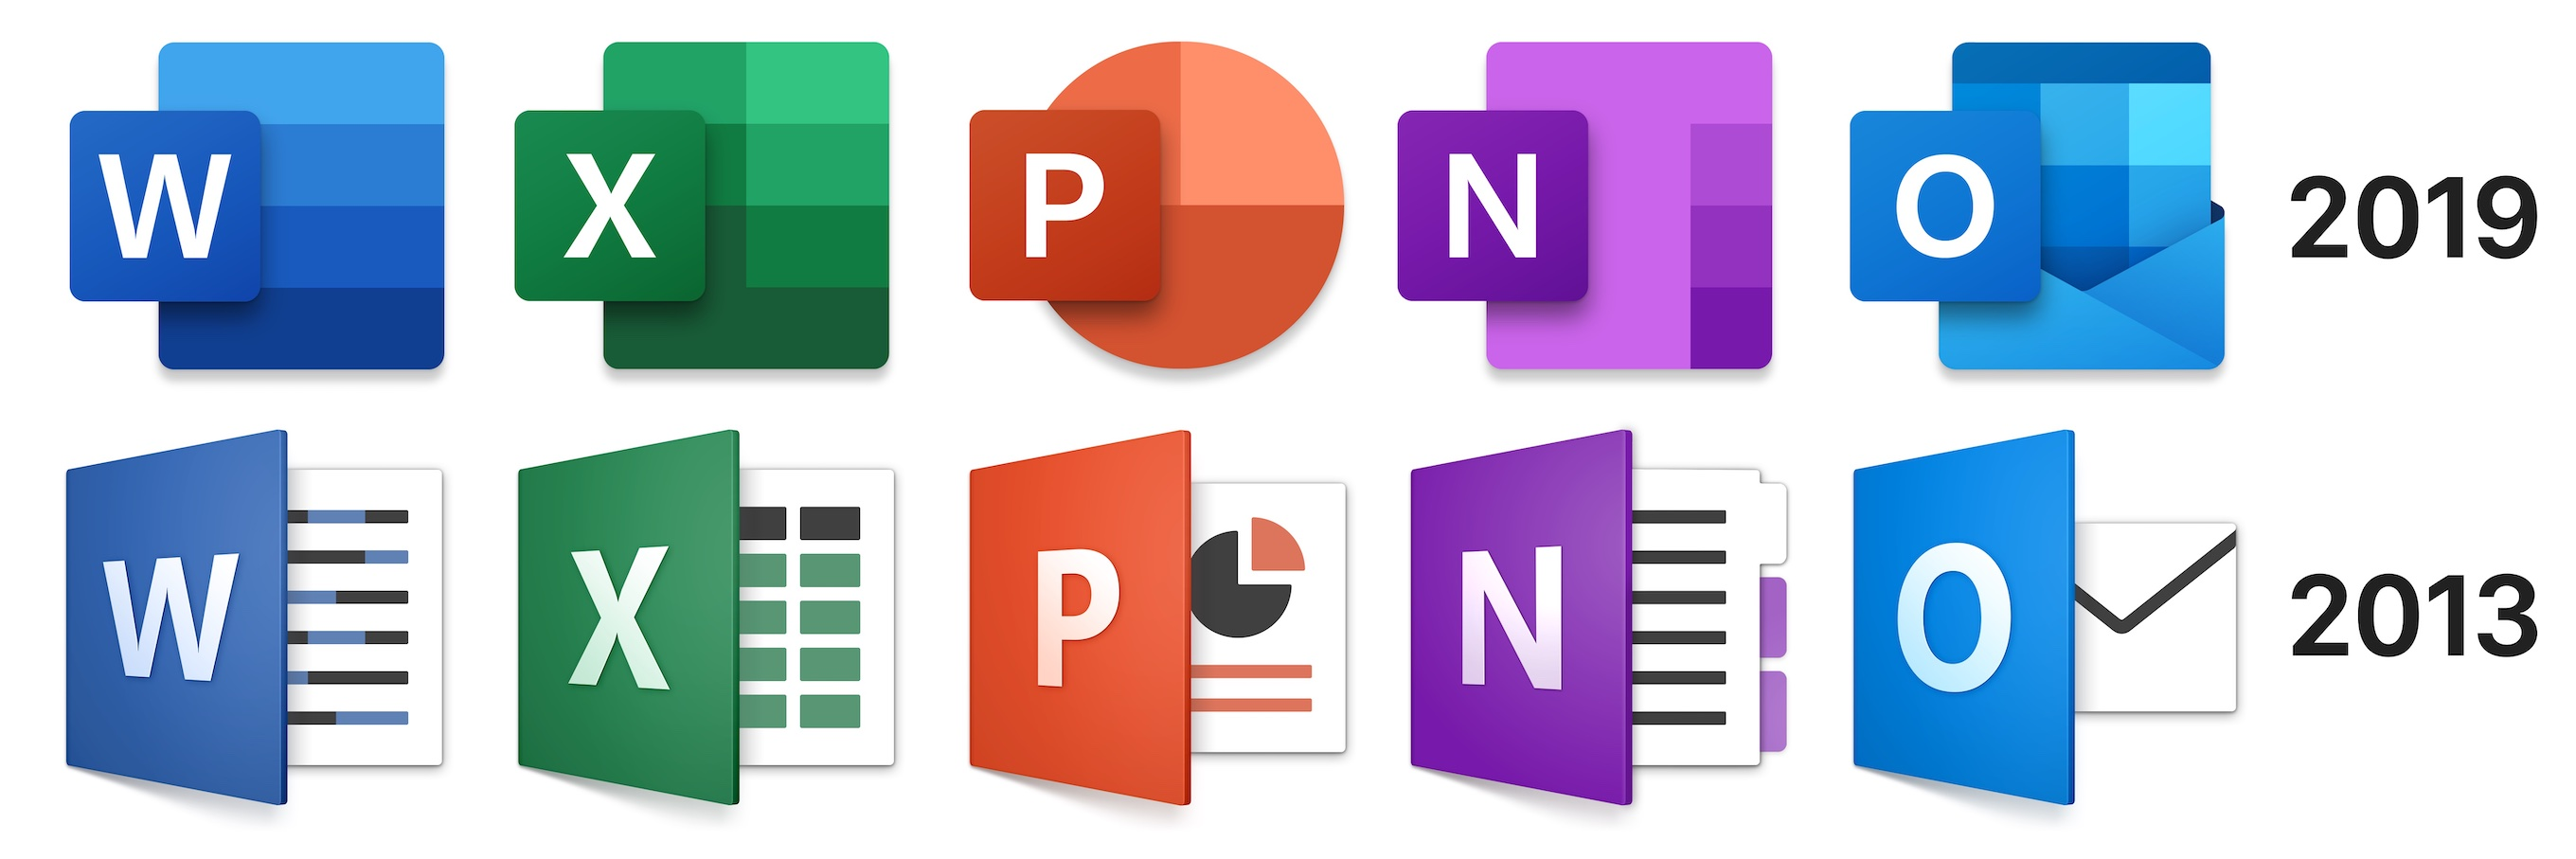 Microsoft Office 365 for Mac New Icons